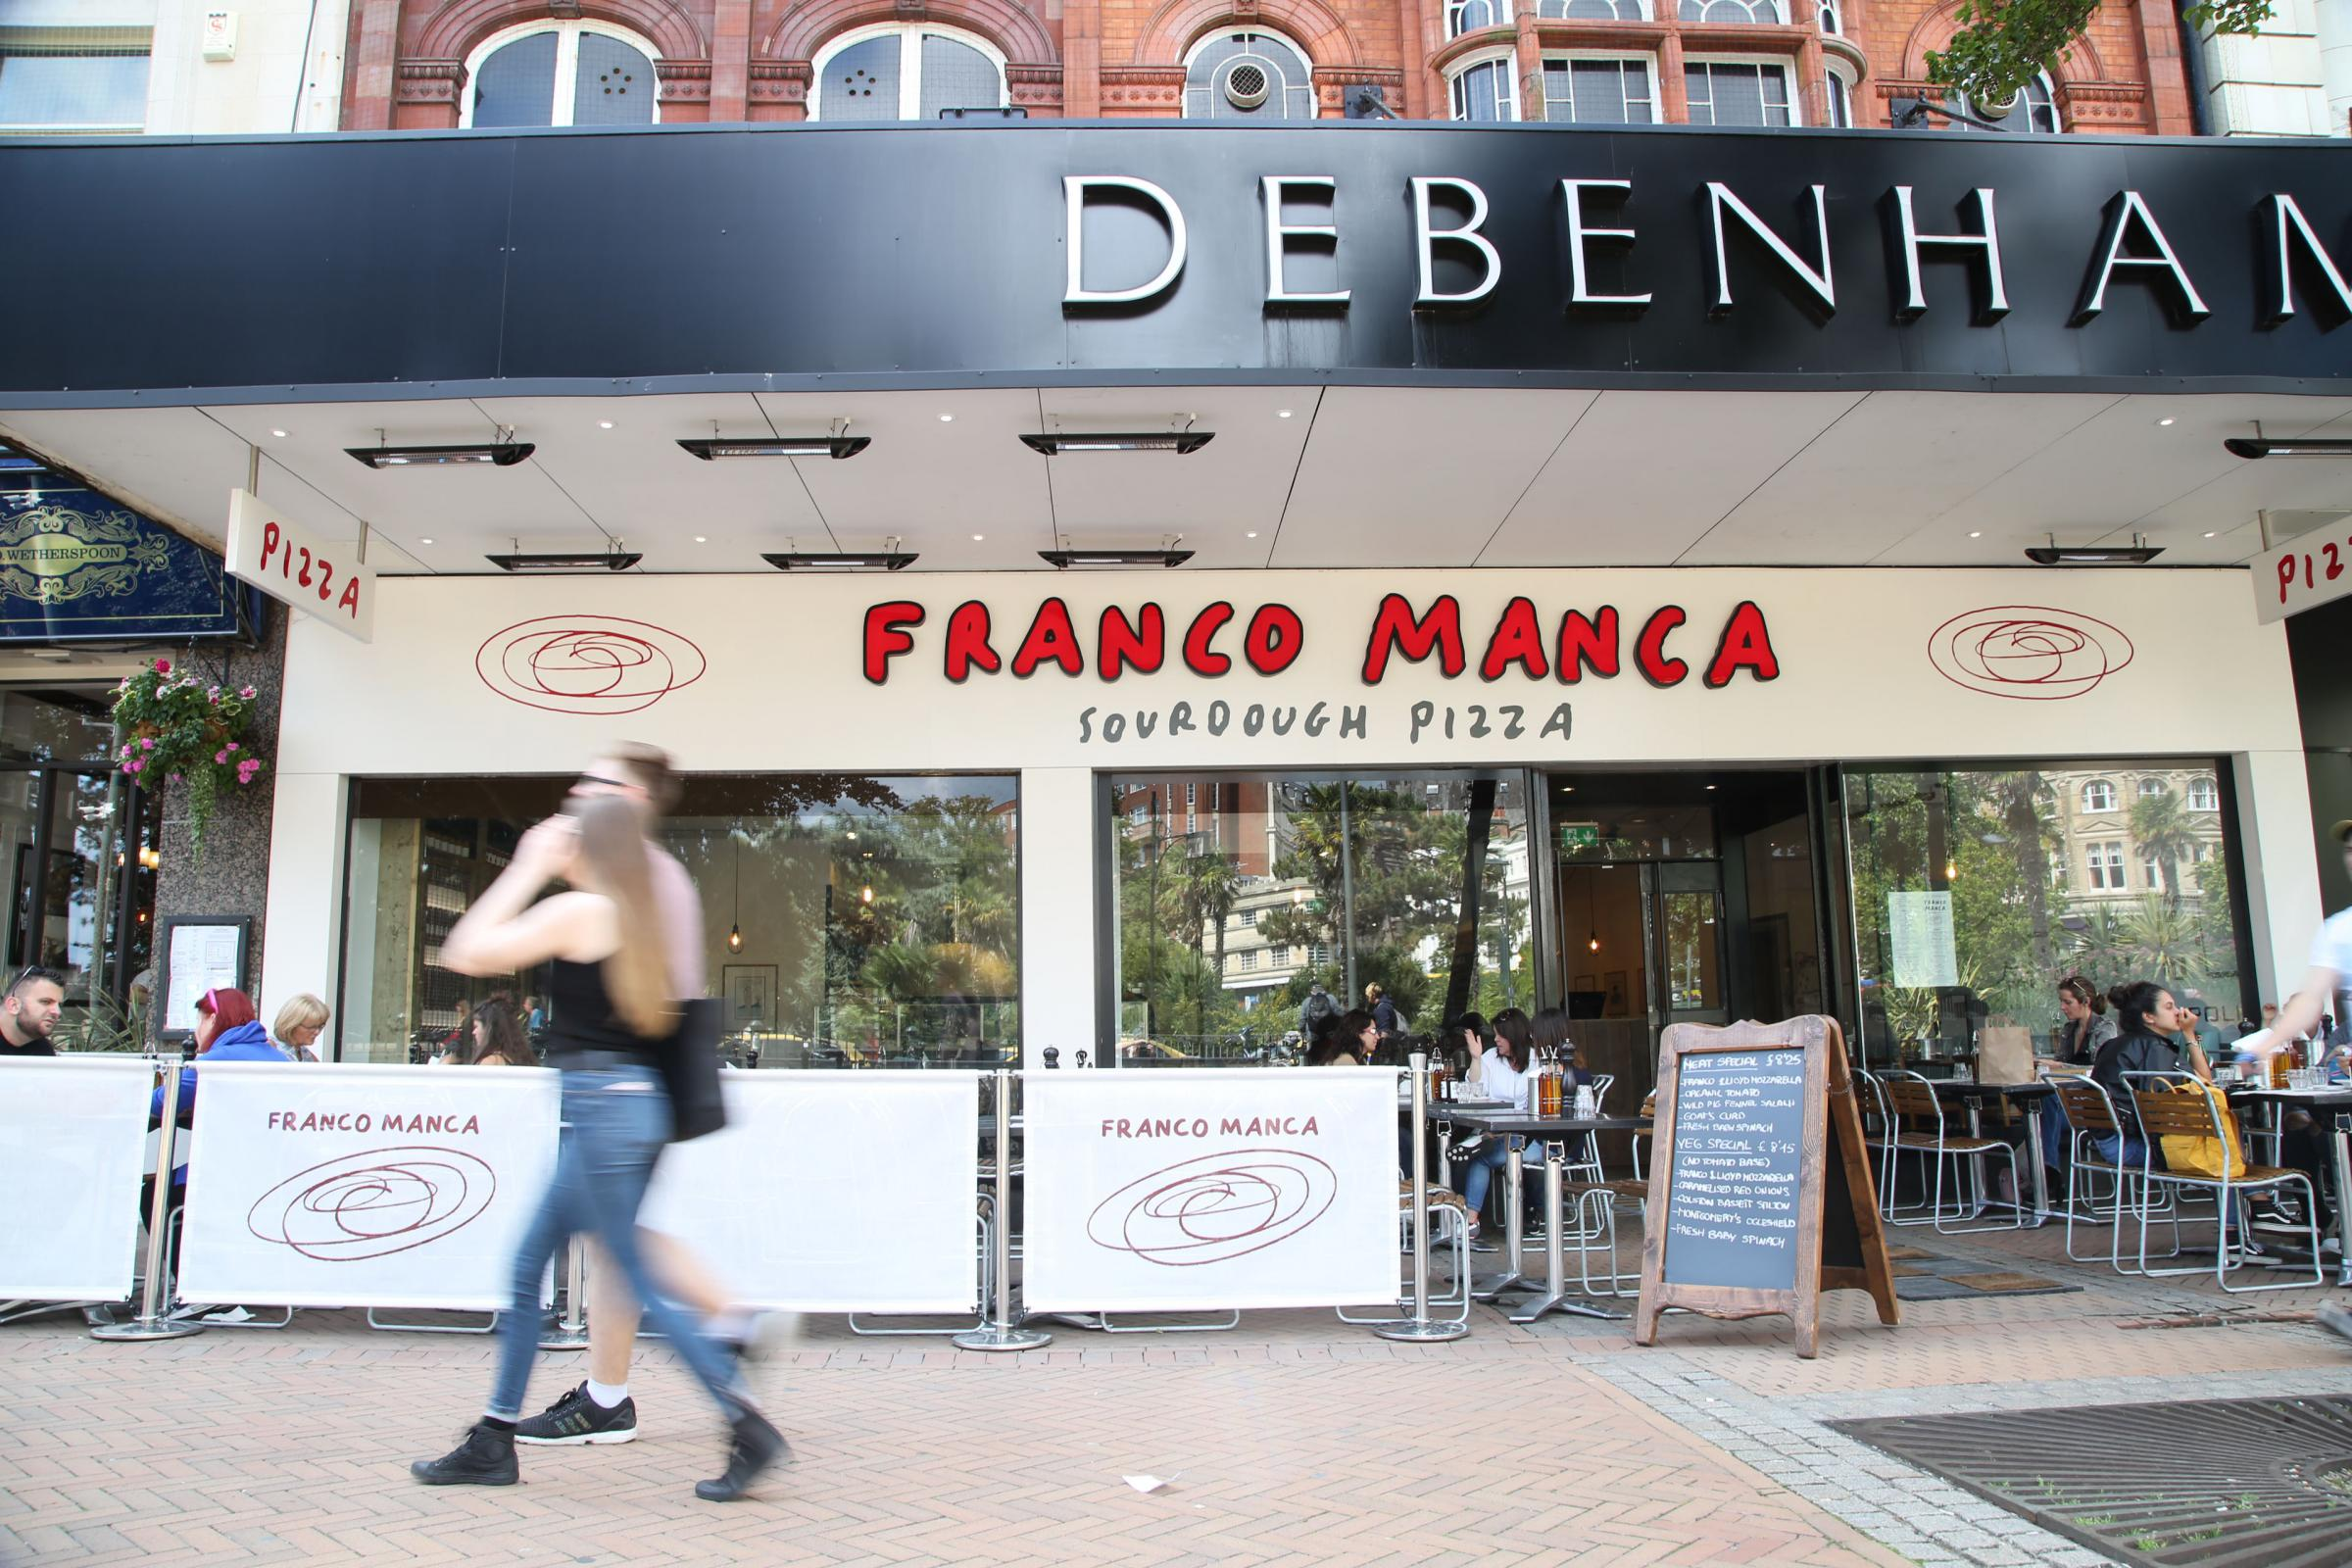 The Franco Manca pizza restaurant in the Debenhams building in Bournemouth town centre